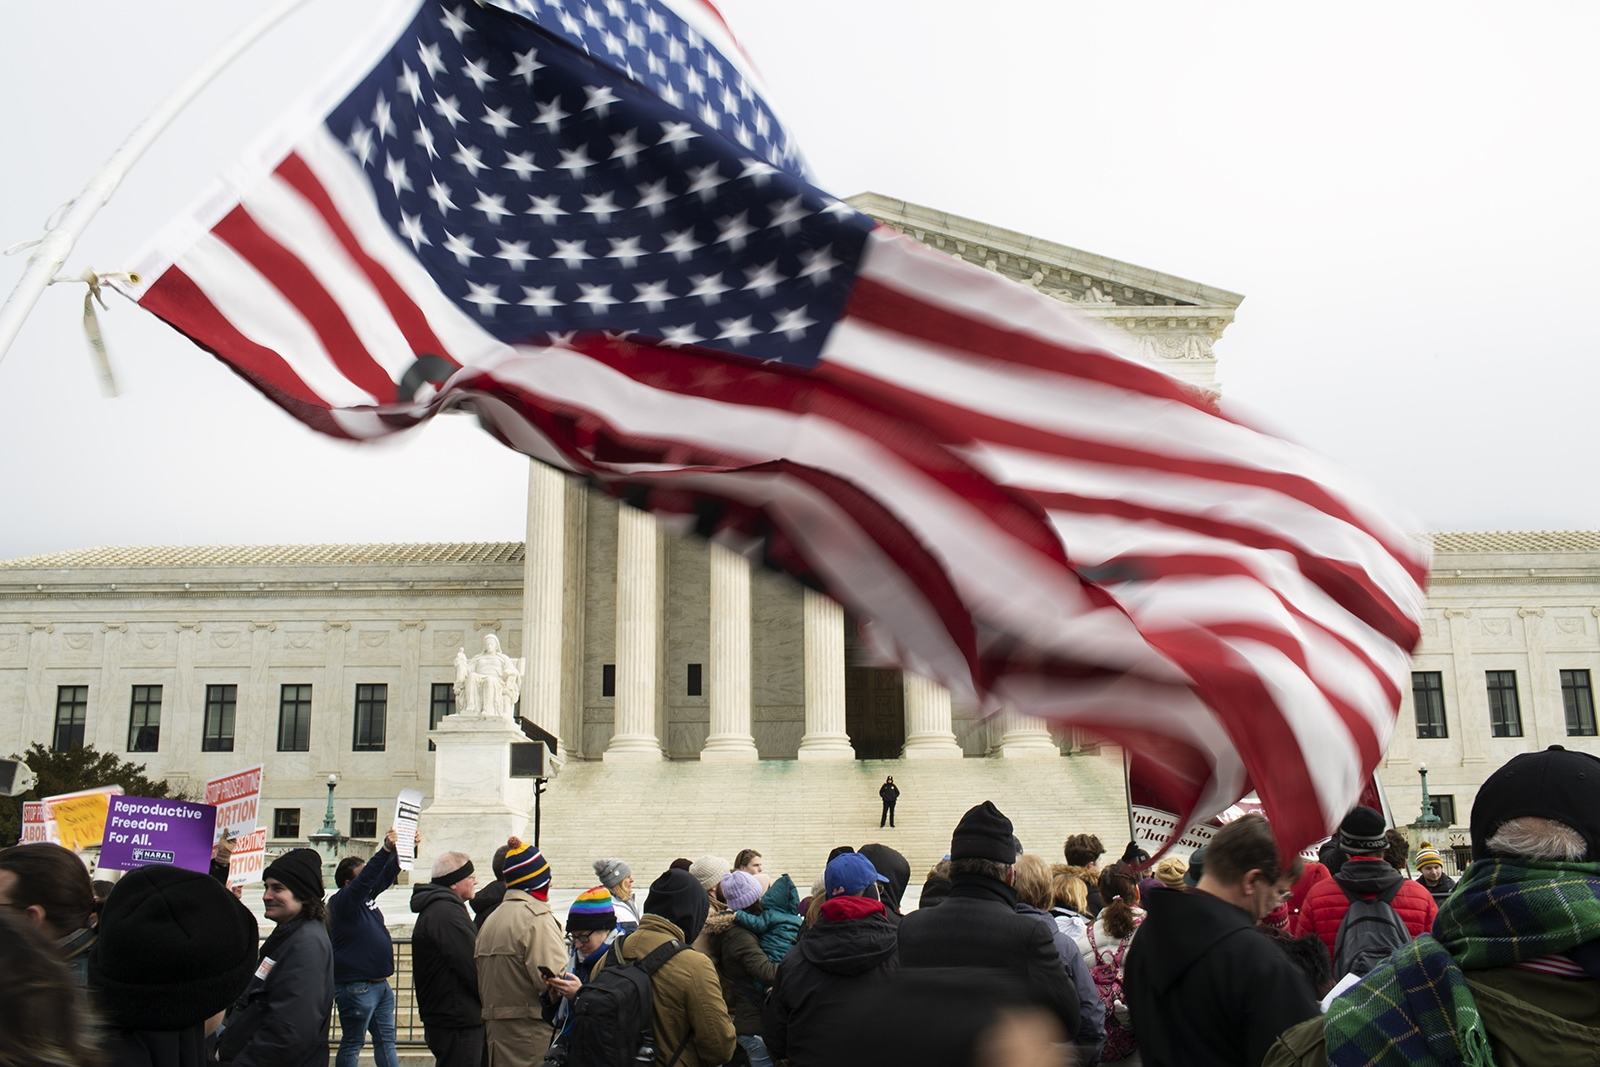 Thousands of people march in front of the U.S. Supreme Court.